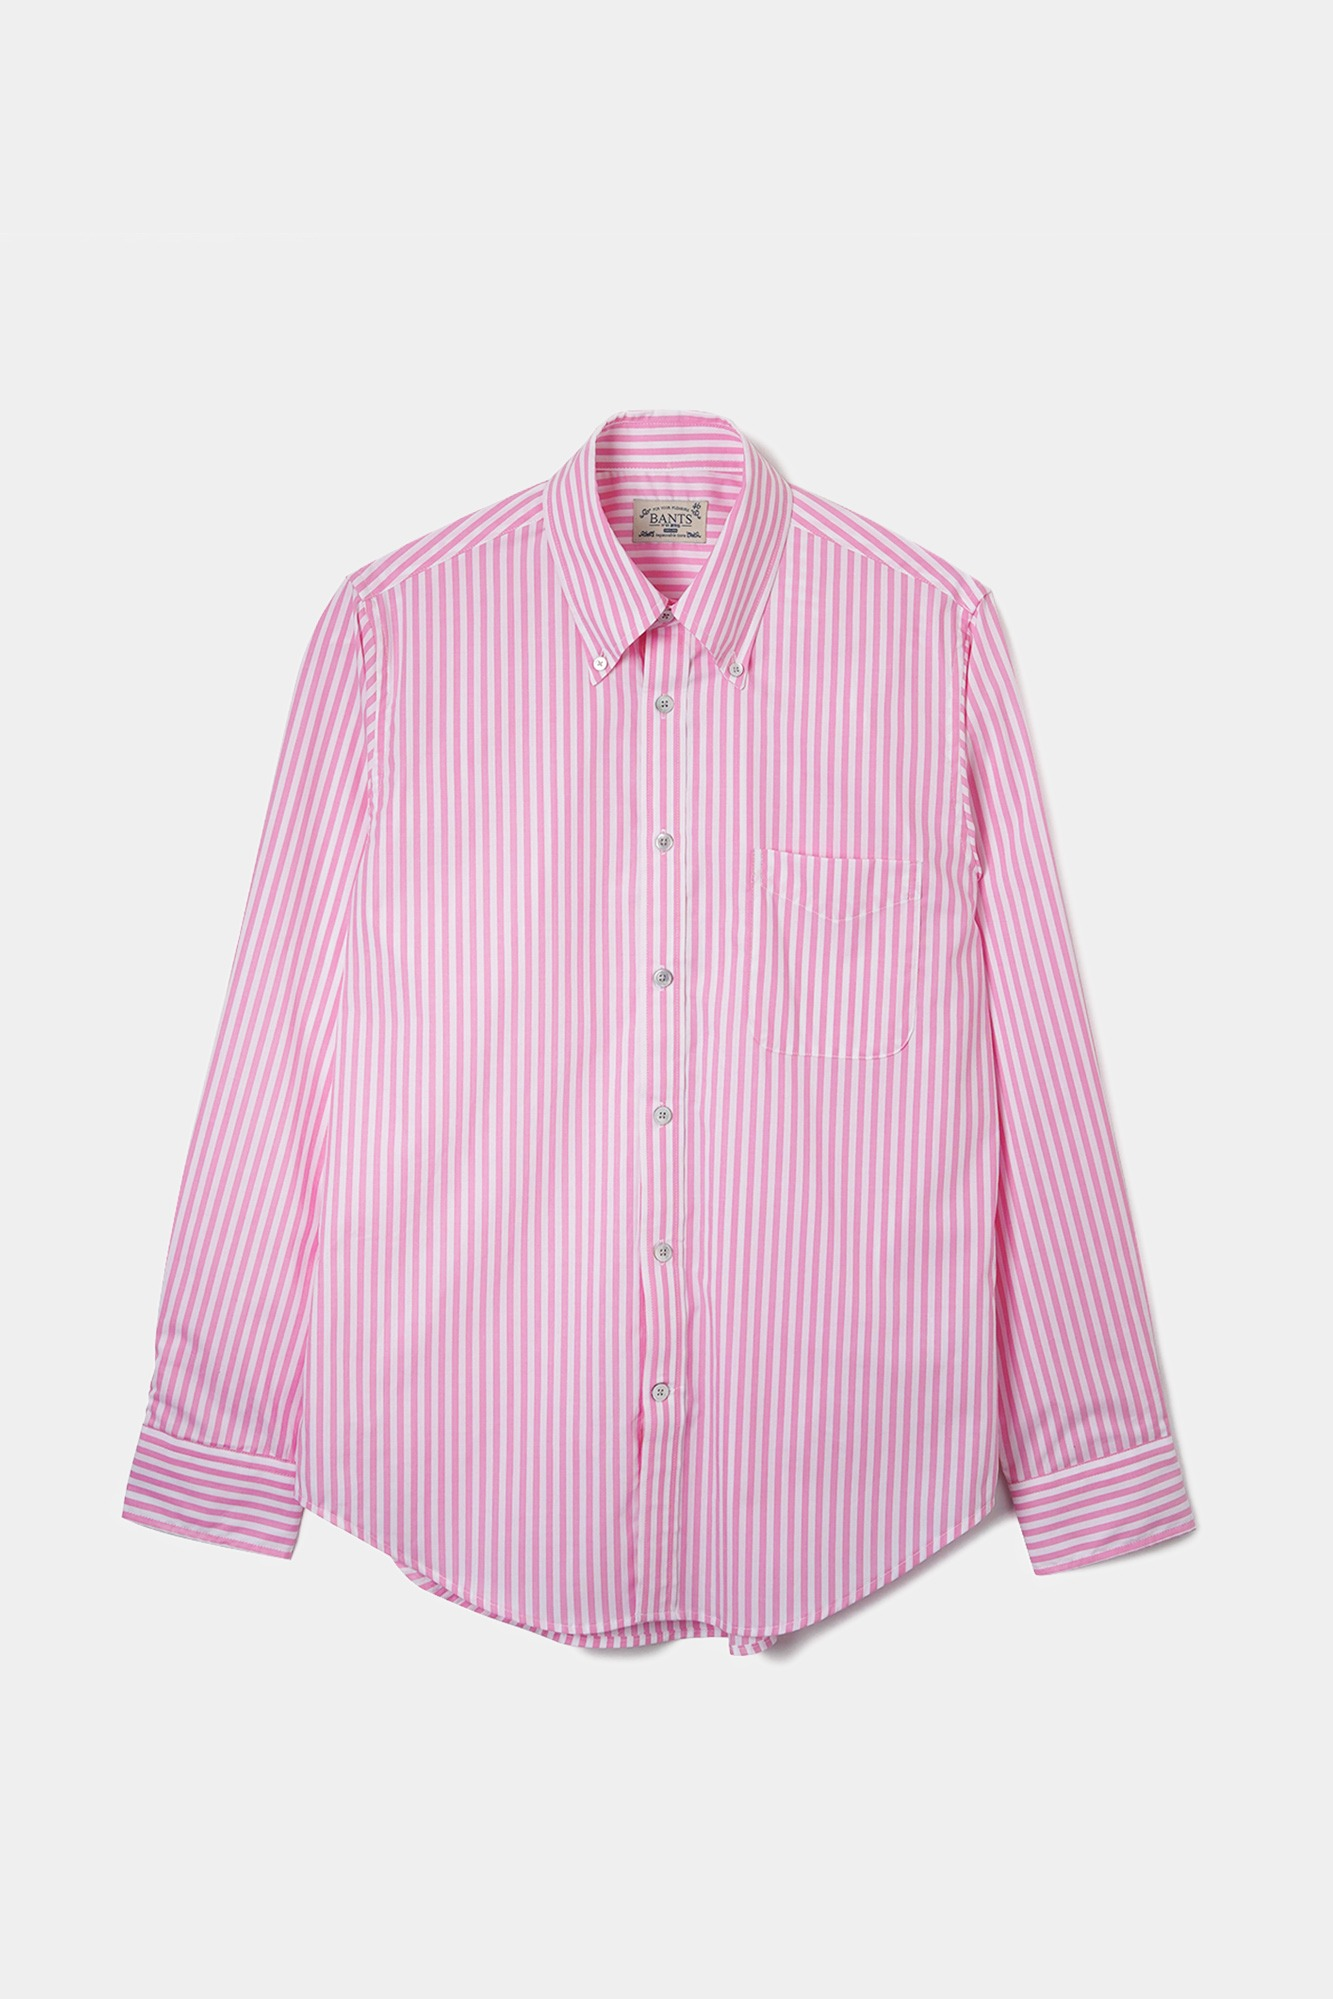 "BANTS OPD Stripe Broadcloth B.D Shirt ""Pink"""